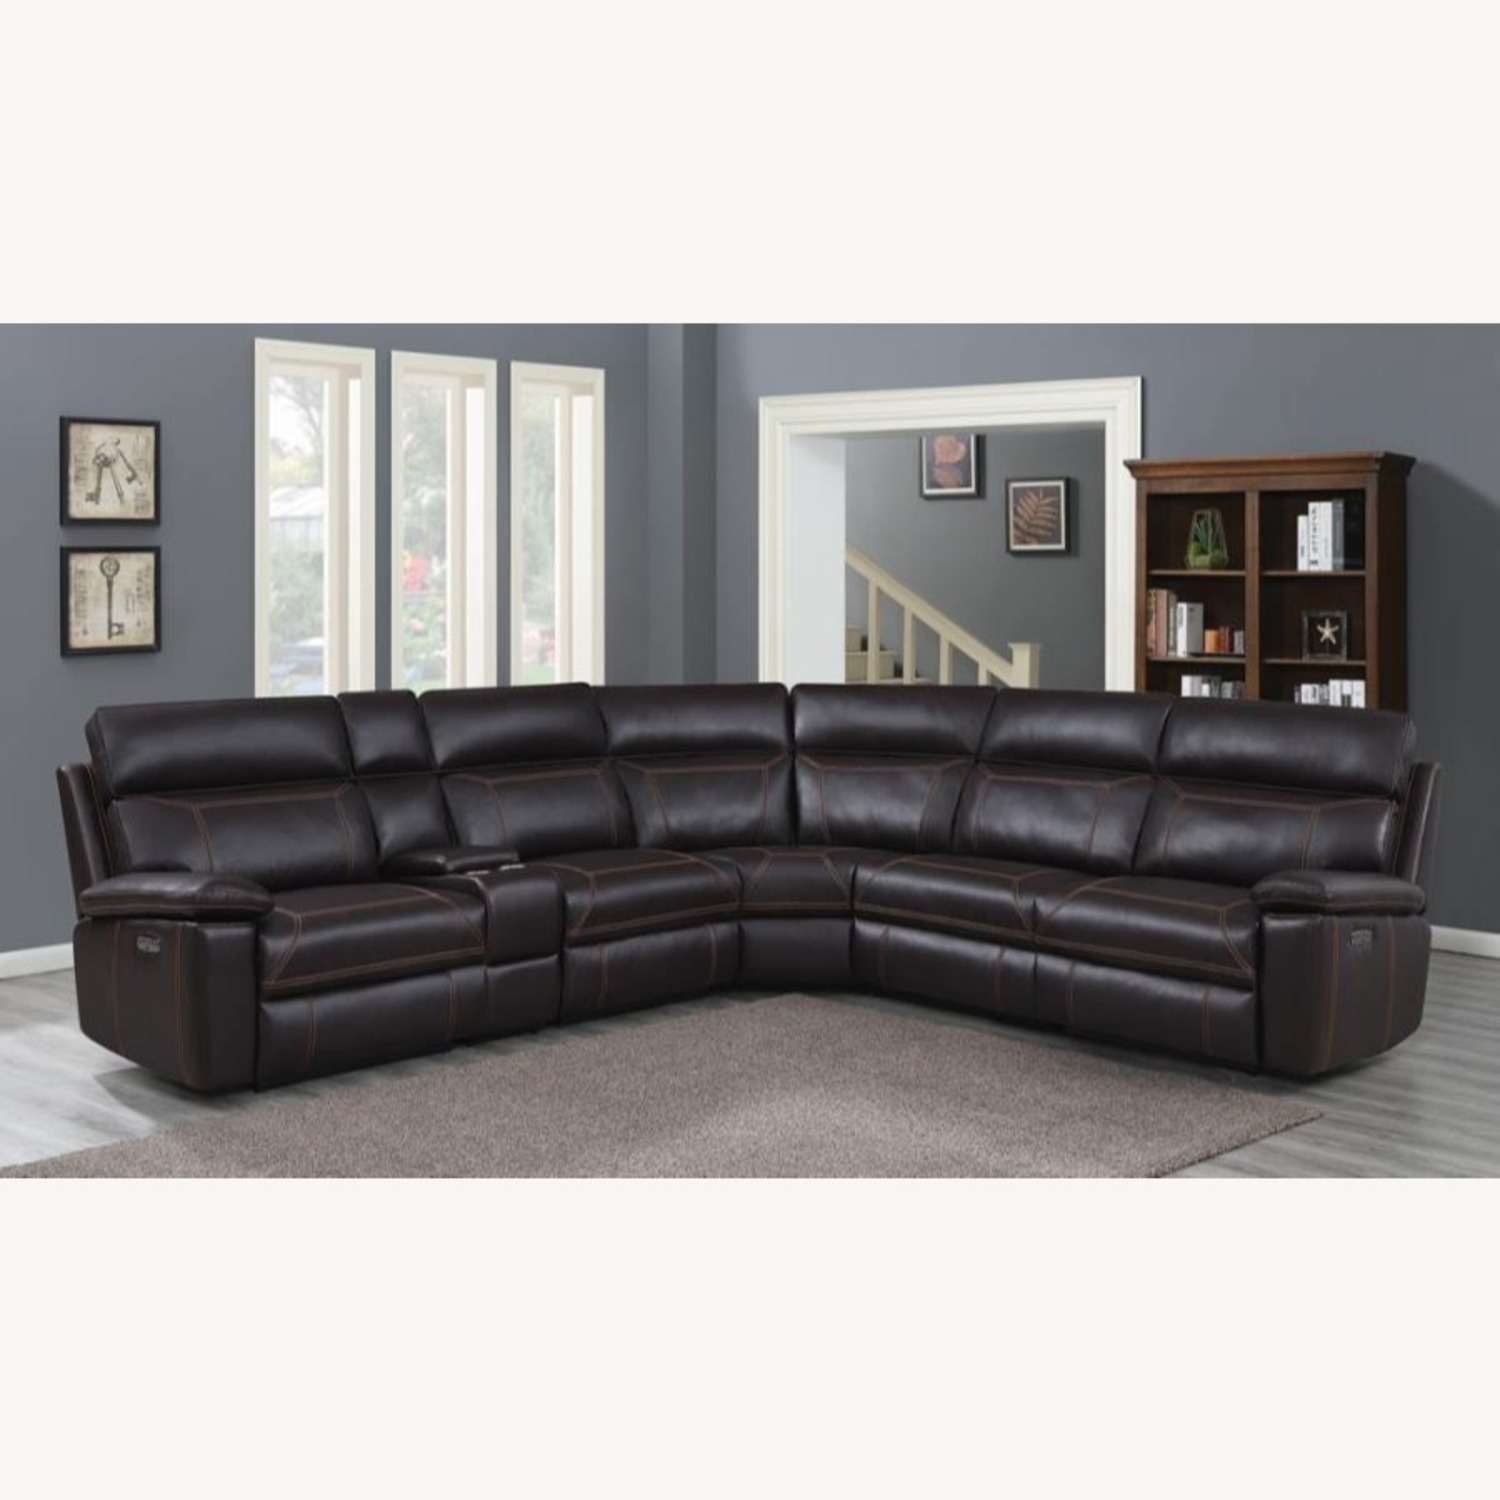 6-Piece Power2 Sectional In Brown Leatherette - image-8